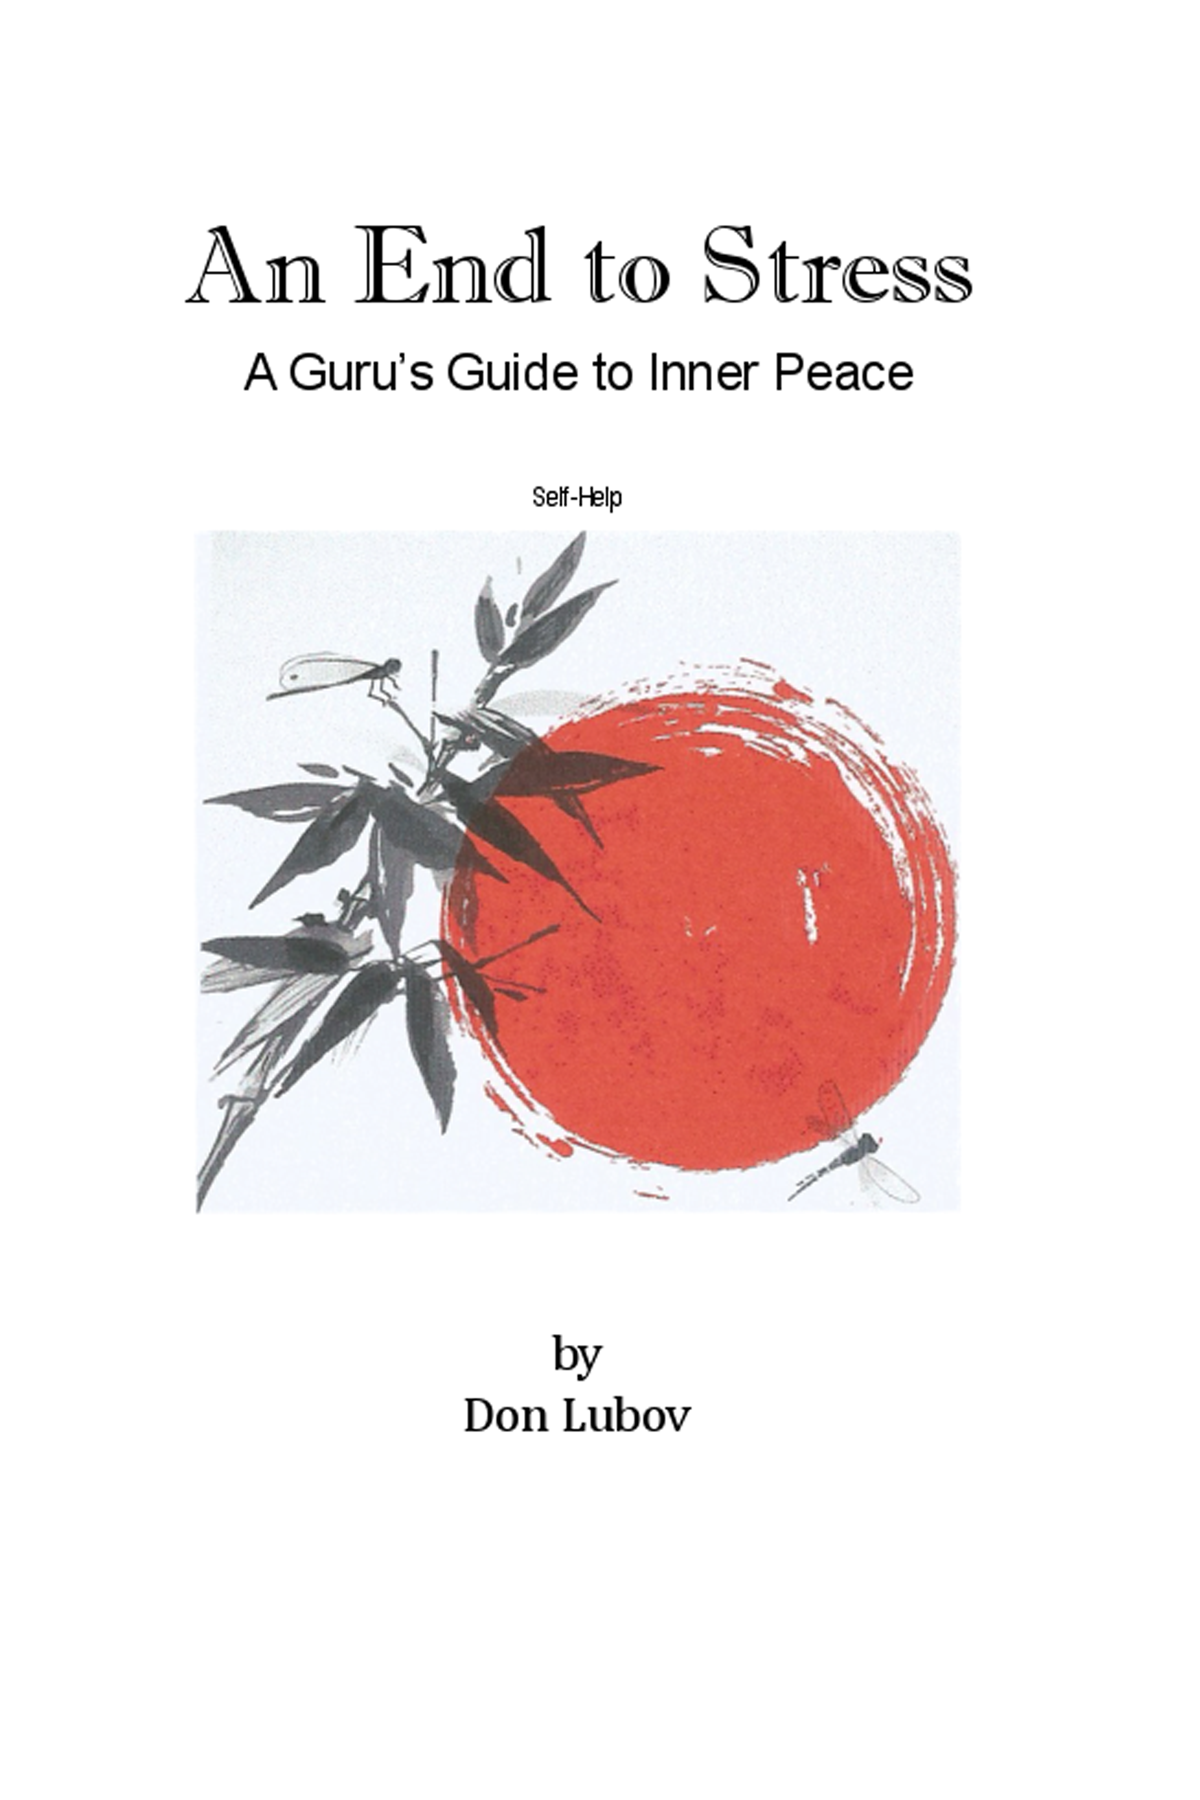 """An End to Stress - """"The two most important days in your life are the day you were born and the day you find out why"""" (M.T.). This book will help you understand the why.A Guru's Guide to Inner Peace is an informal path, from stress to inner peace. It follows the """"Six-Step Path"""" that has helped thousands of people to live in the present. This guide allows you to accept things as they are, including imperfections in yourself and others.It guides you to make conscious contact with the non-physical presence within all of us. It encourages you to find your natural gifts and talents and to use them to the best of your abilities. You learn to follow your heart, not your head.You learn how to make your life your meditation—informal, spontaneous and creative. You become the best you you can be. You are now ripe for a spiritual awakening. You now know that the world is not so much as we find it, but as we make it.2018, available in print & Kindle"""